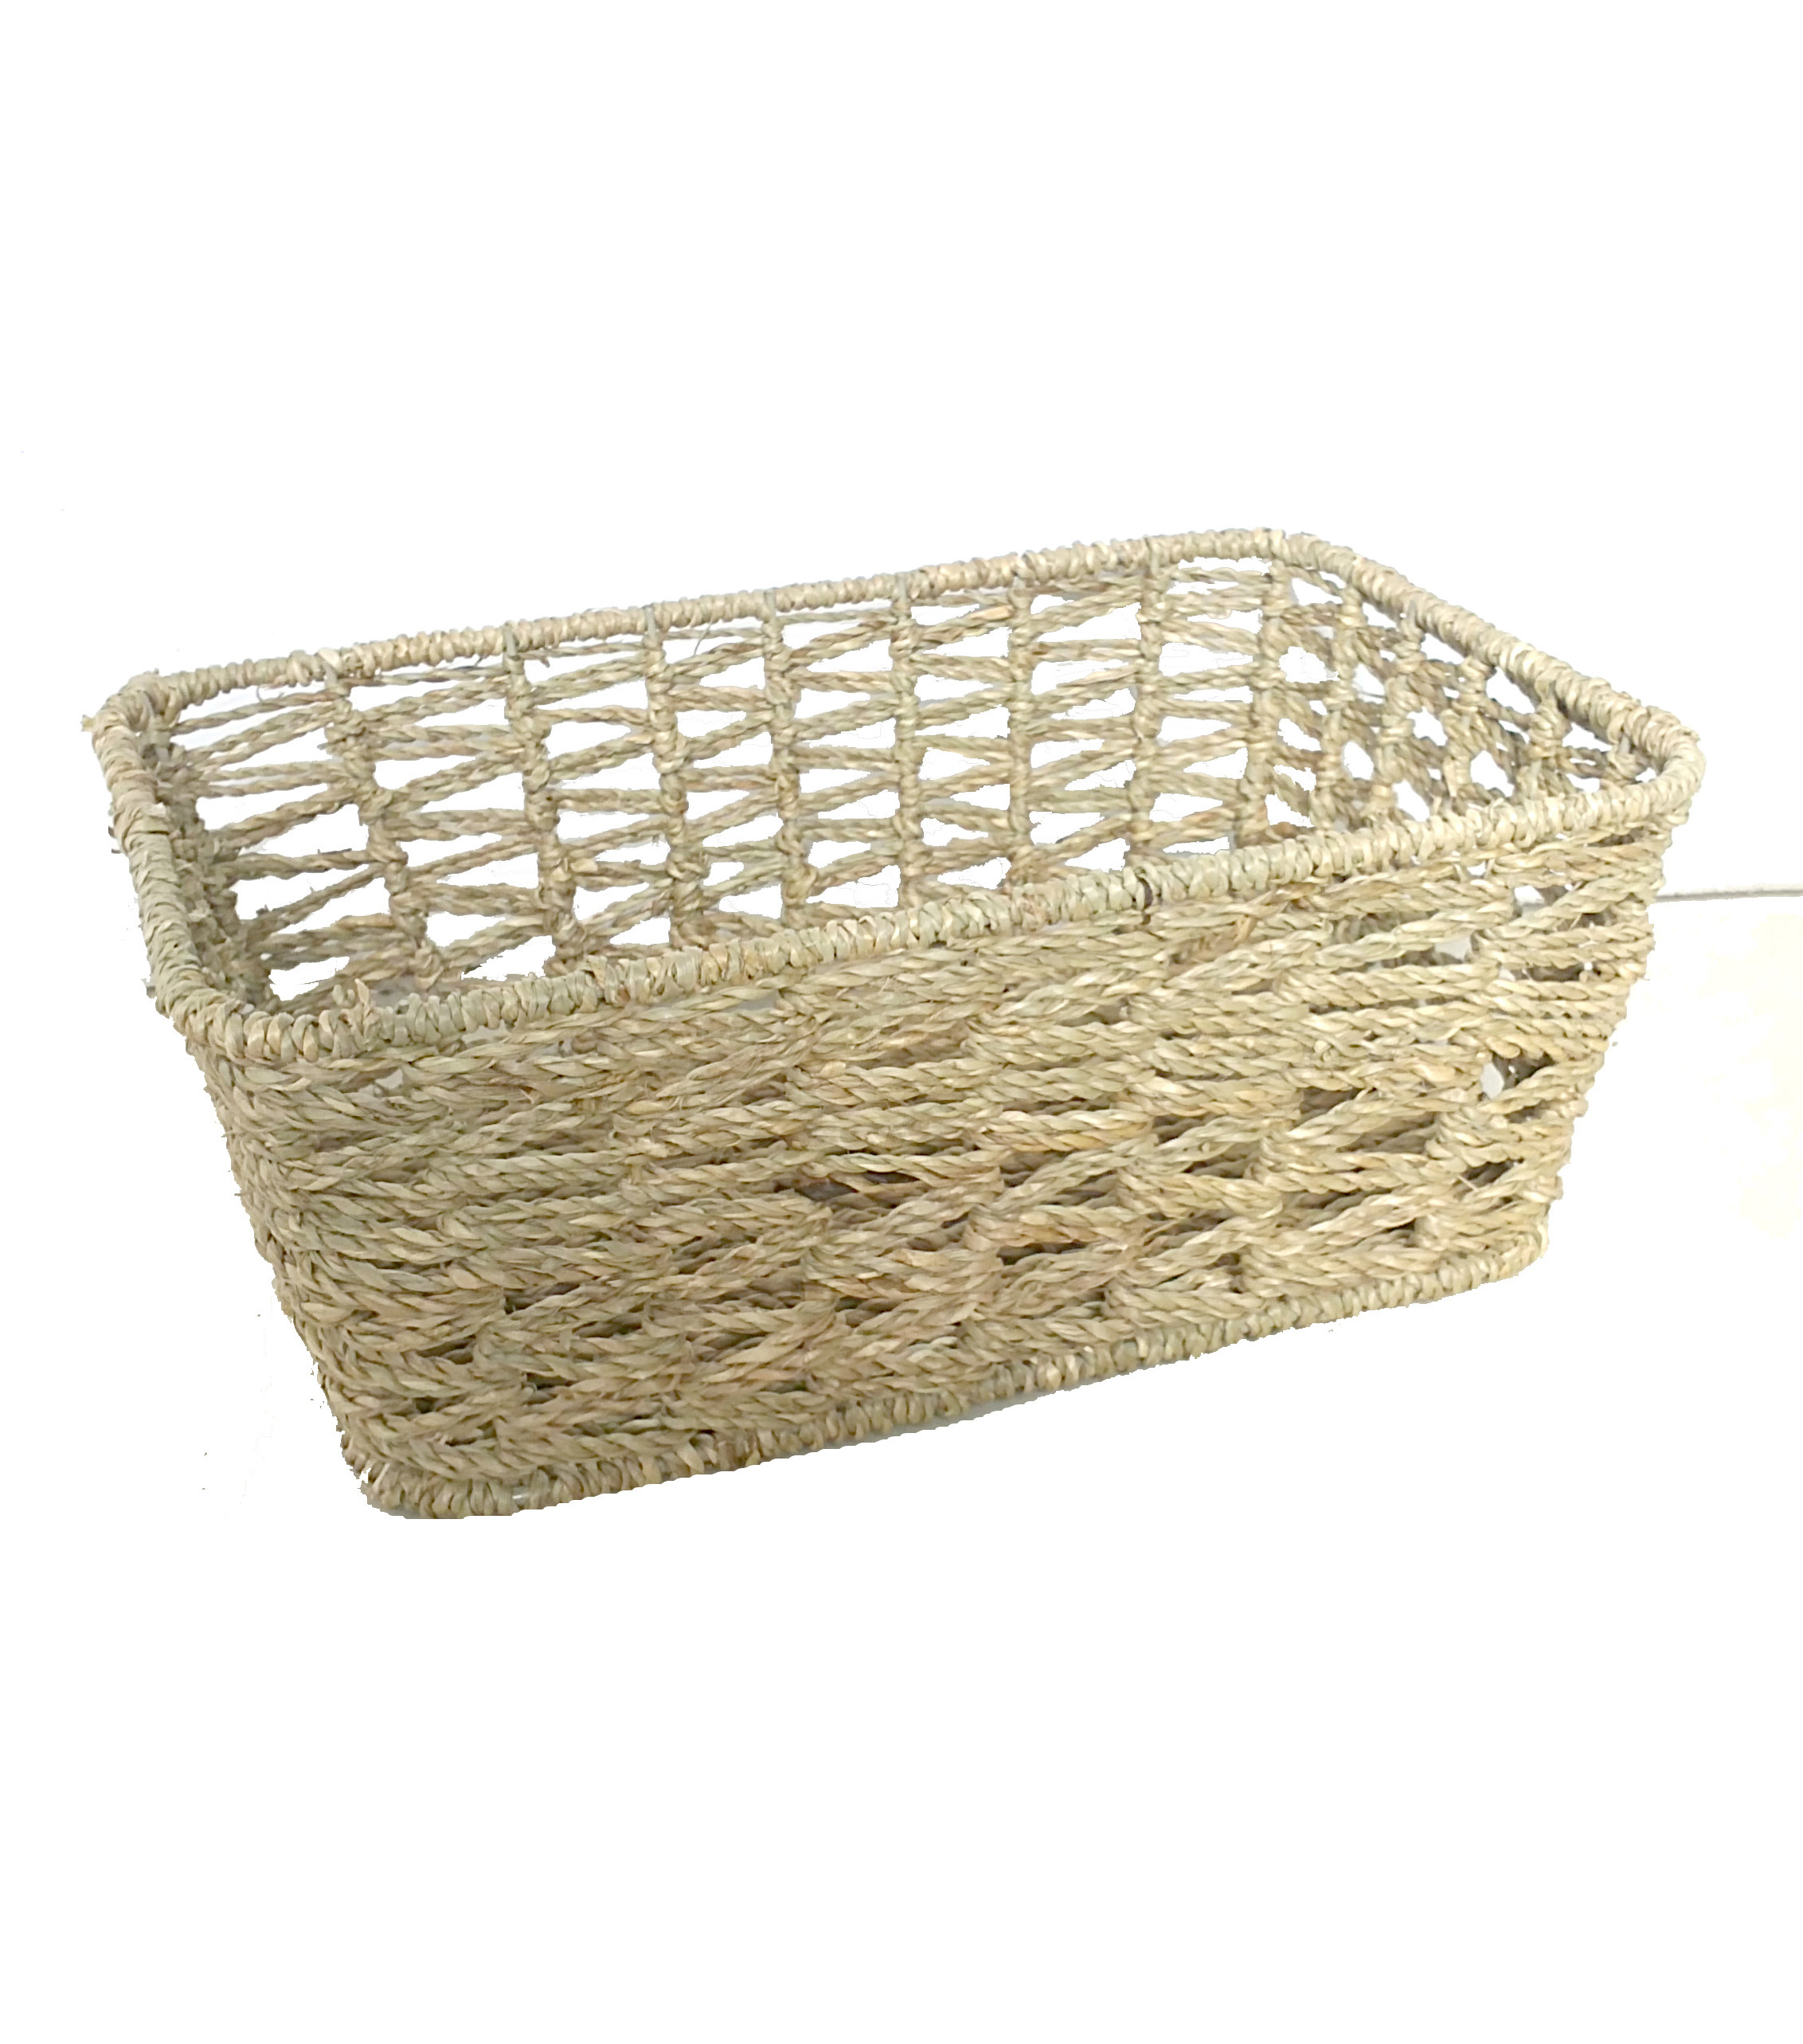 Organizing Essentials Open Rectangle Seagrass Weave Basket